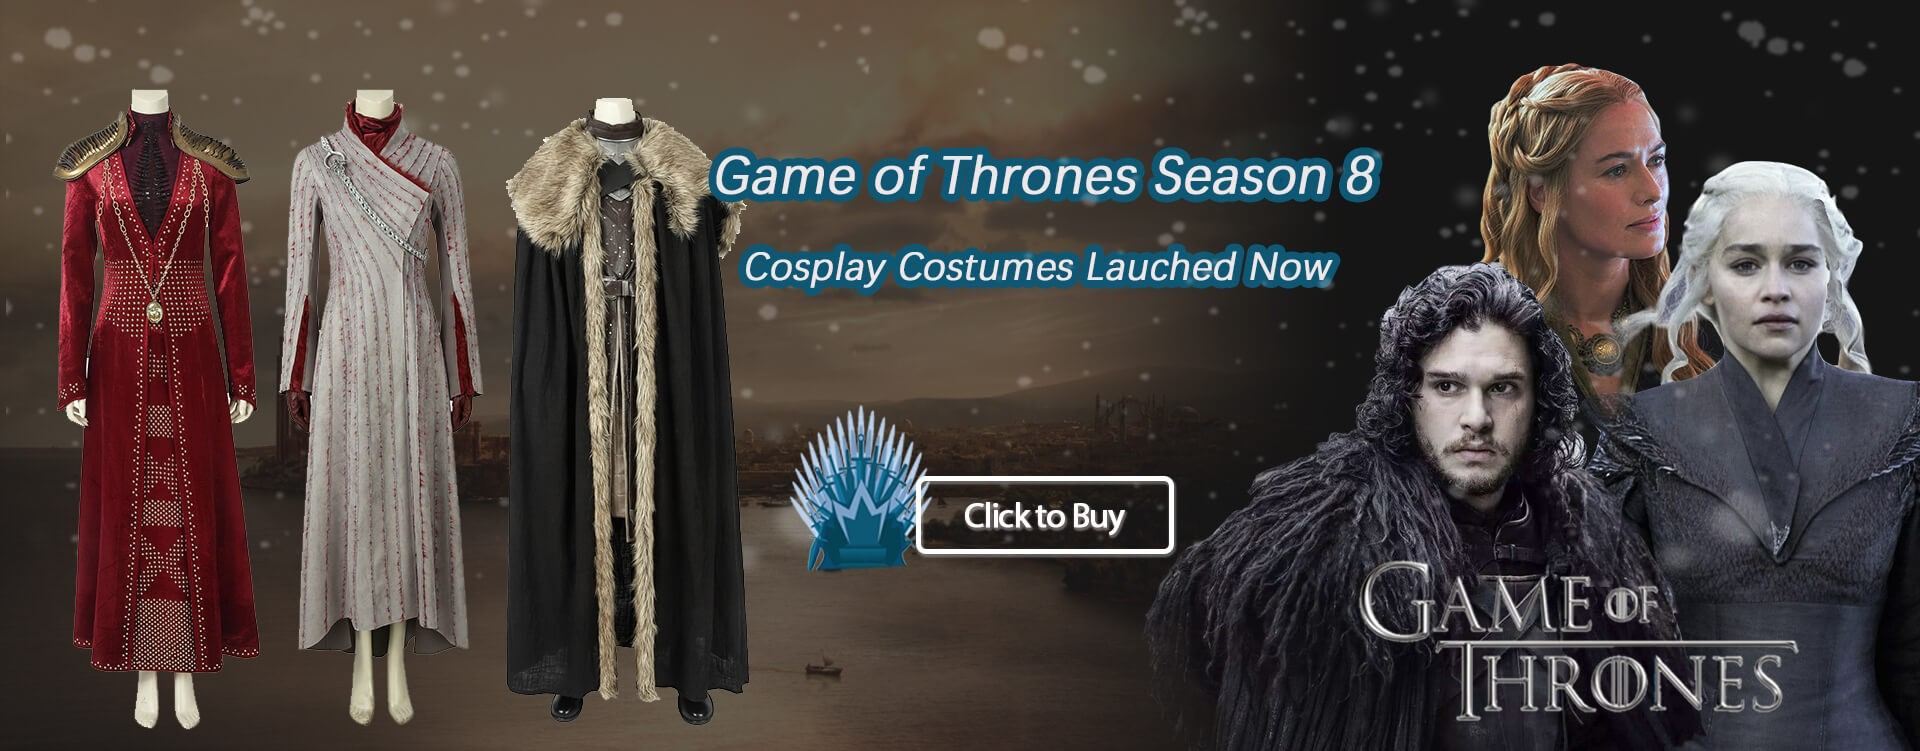 Game of Thrones Season 8 Cosplay Costumes Lauched Now